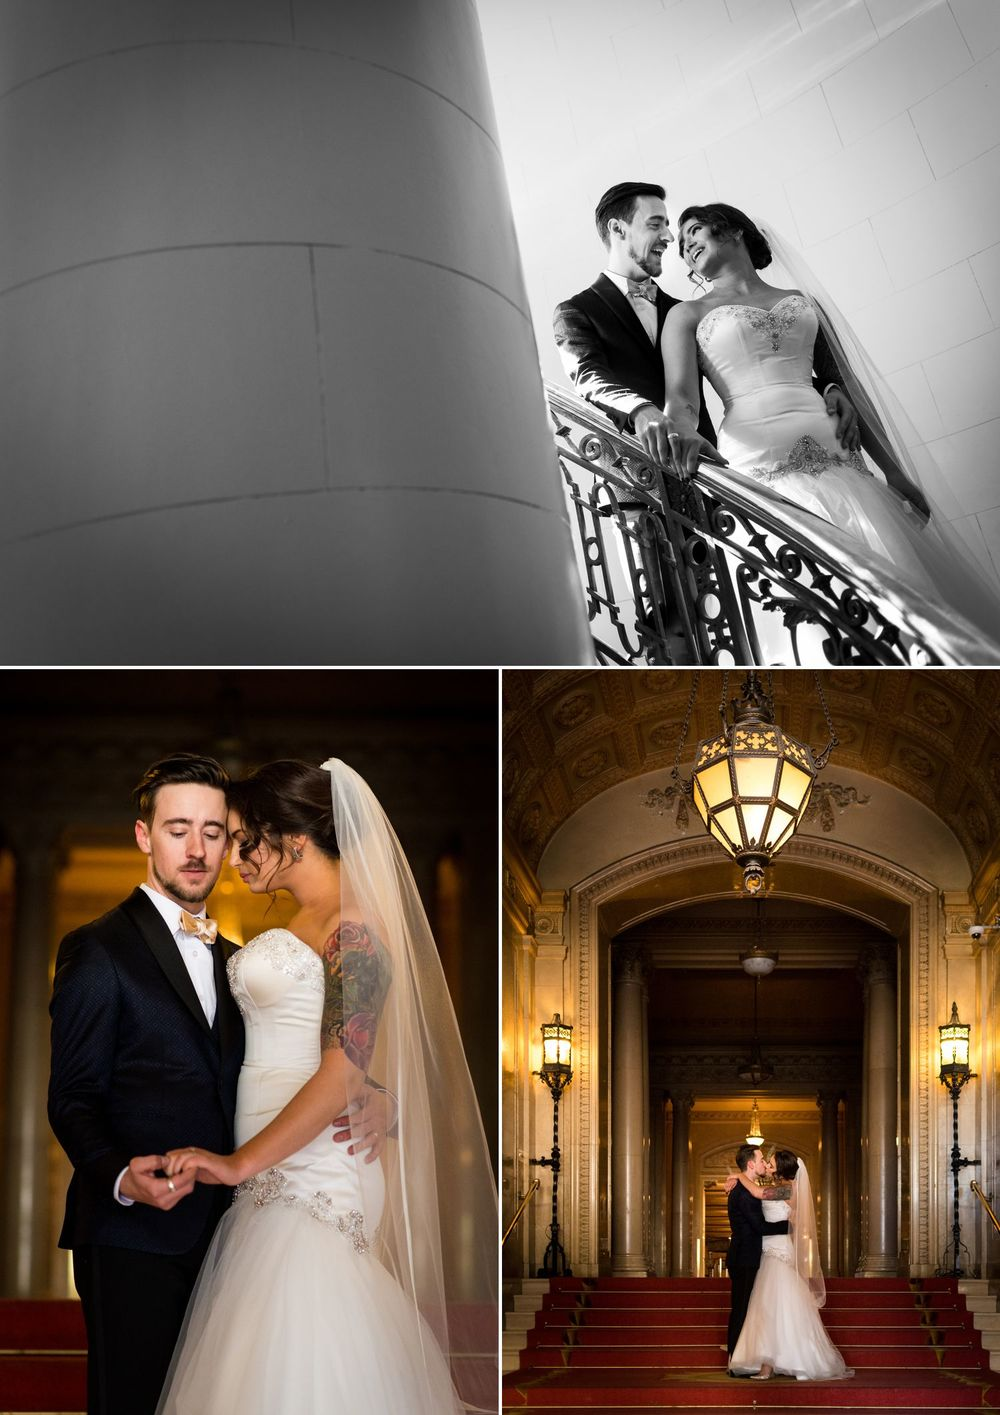 Portraits of the bride and groom at The Chateau Laurier